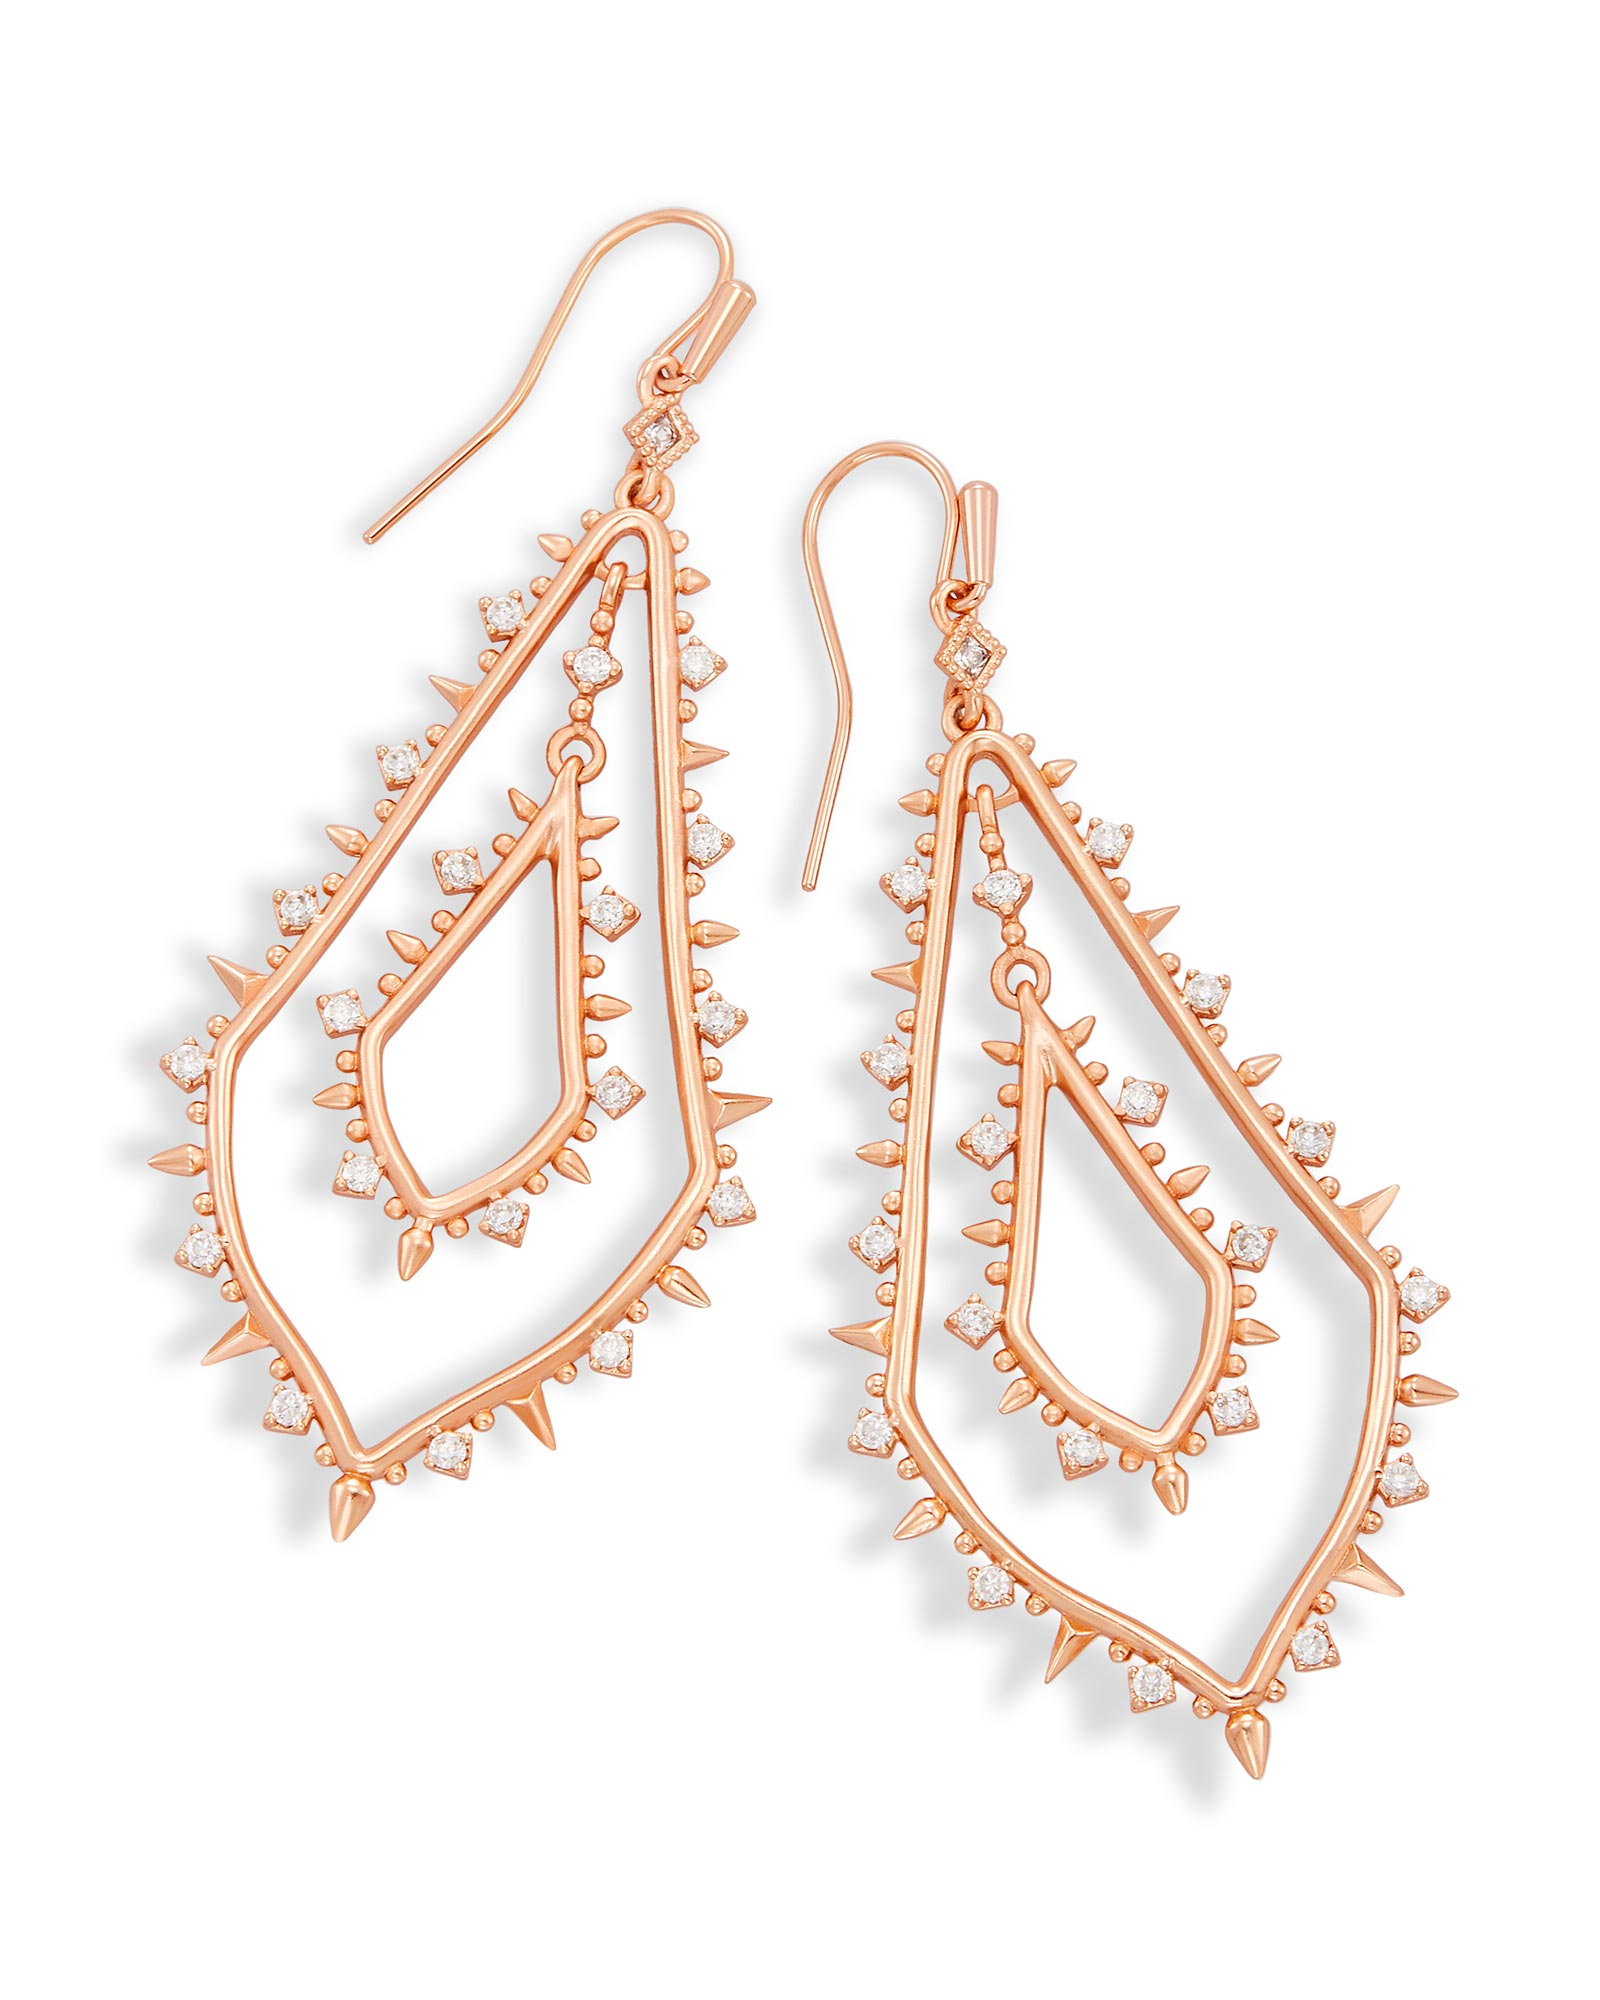 Alice Statement Earrings in Rose Gold